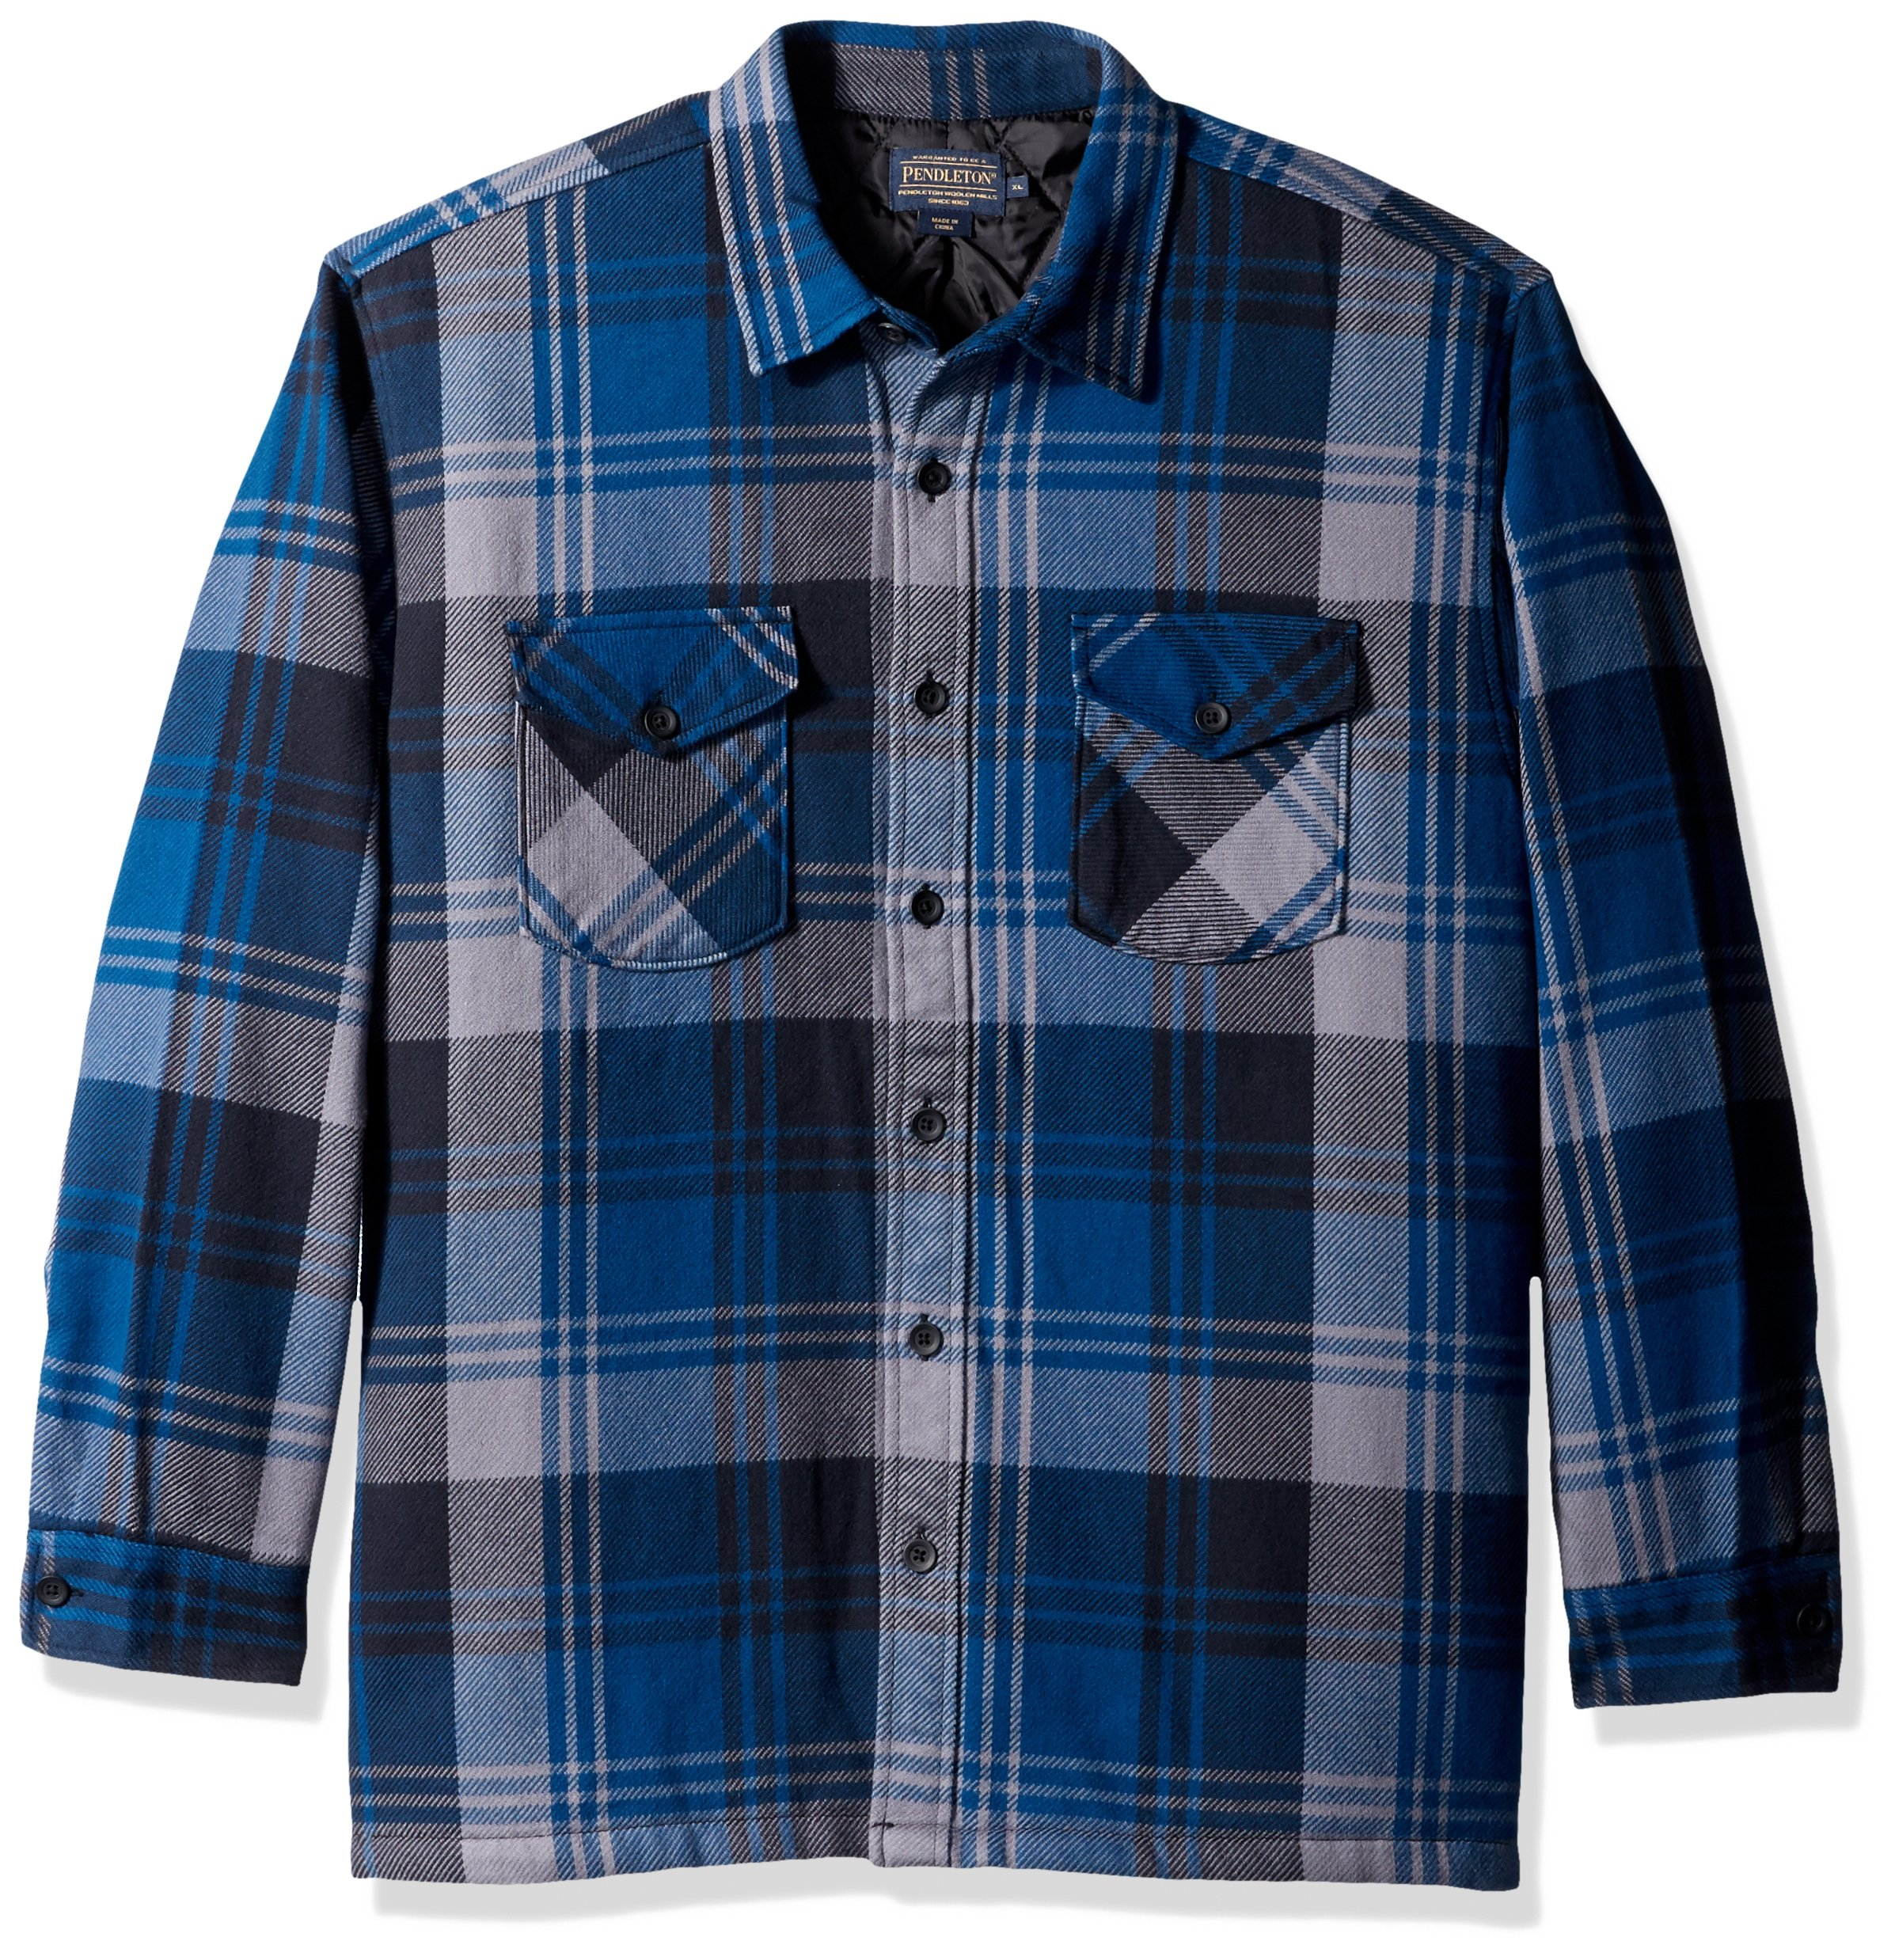 Pendleton Men's Lakeside Shirt Jacket,Colbalt Blue Plaid,XX-Large by Pendleton